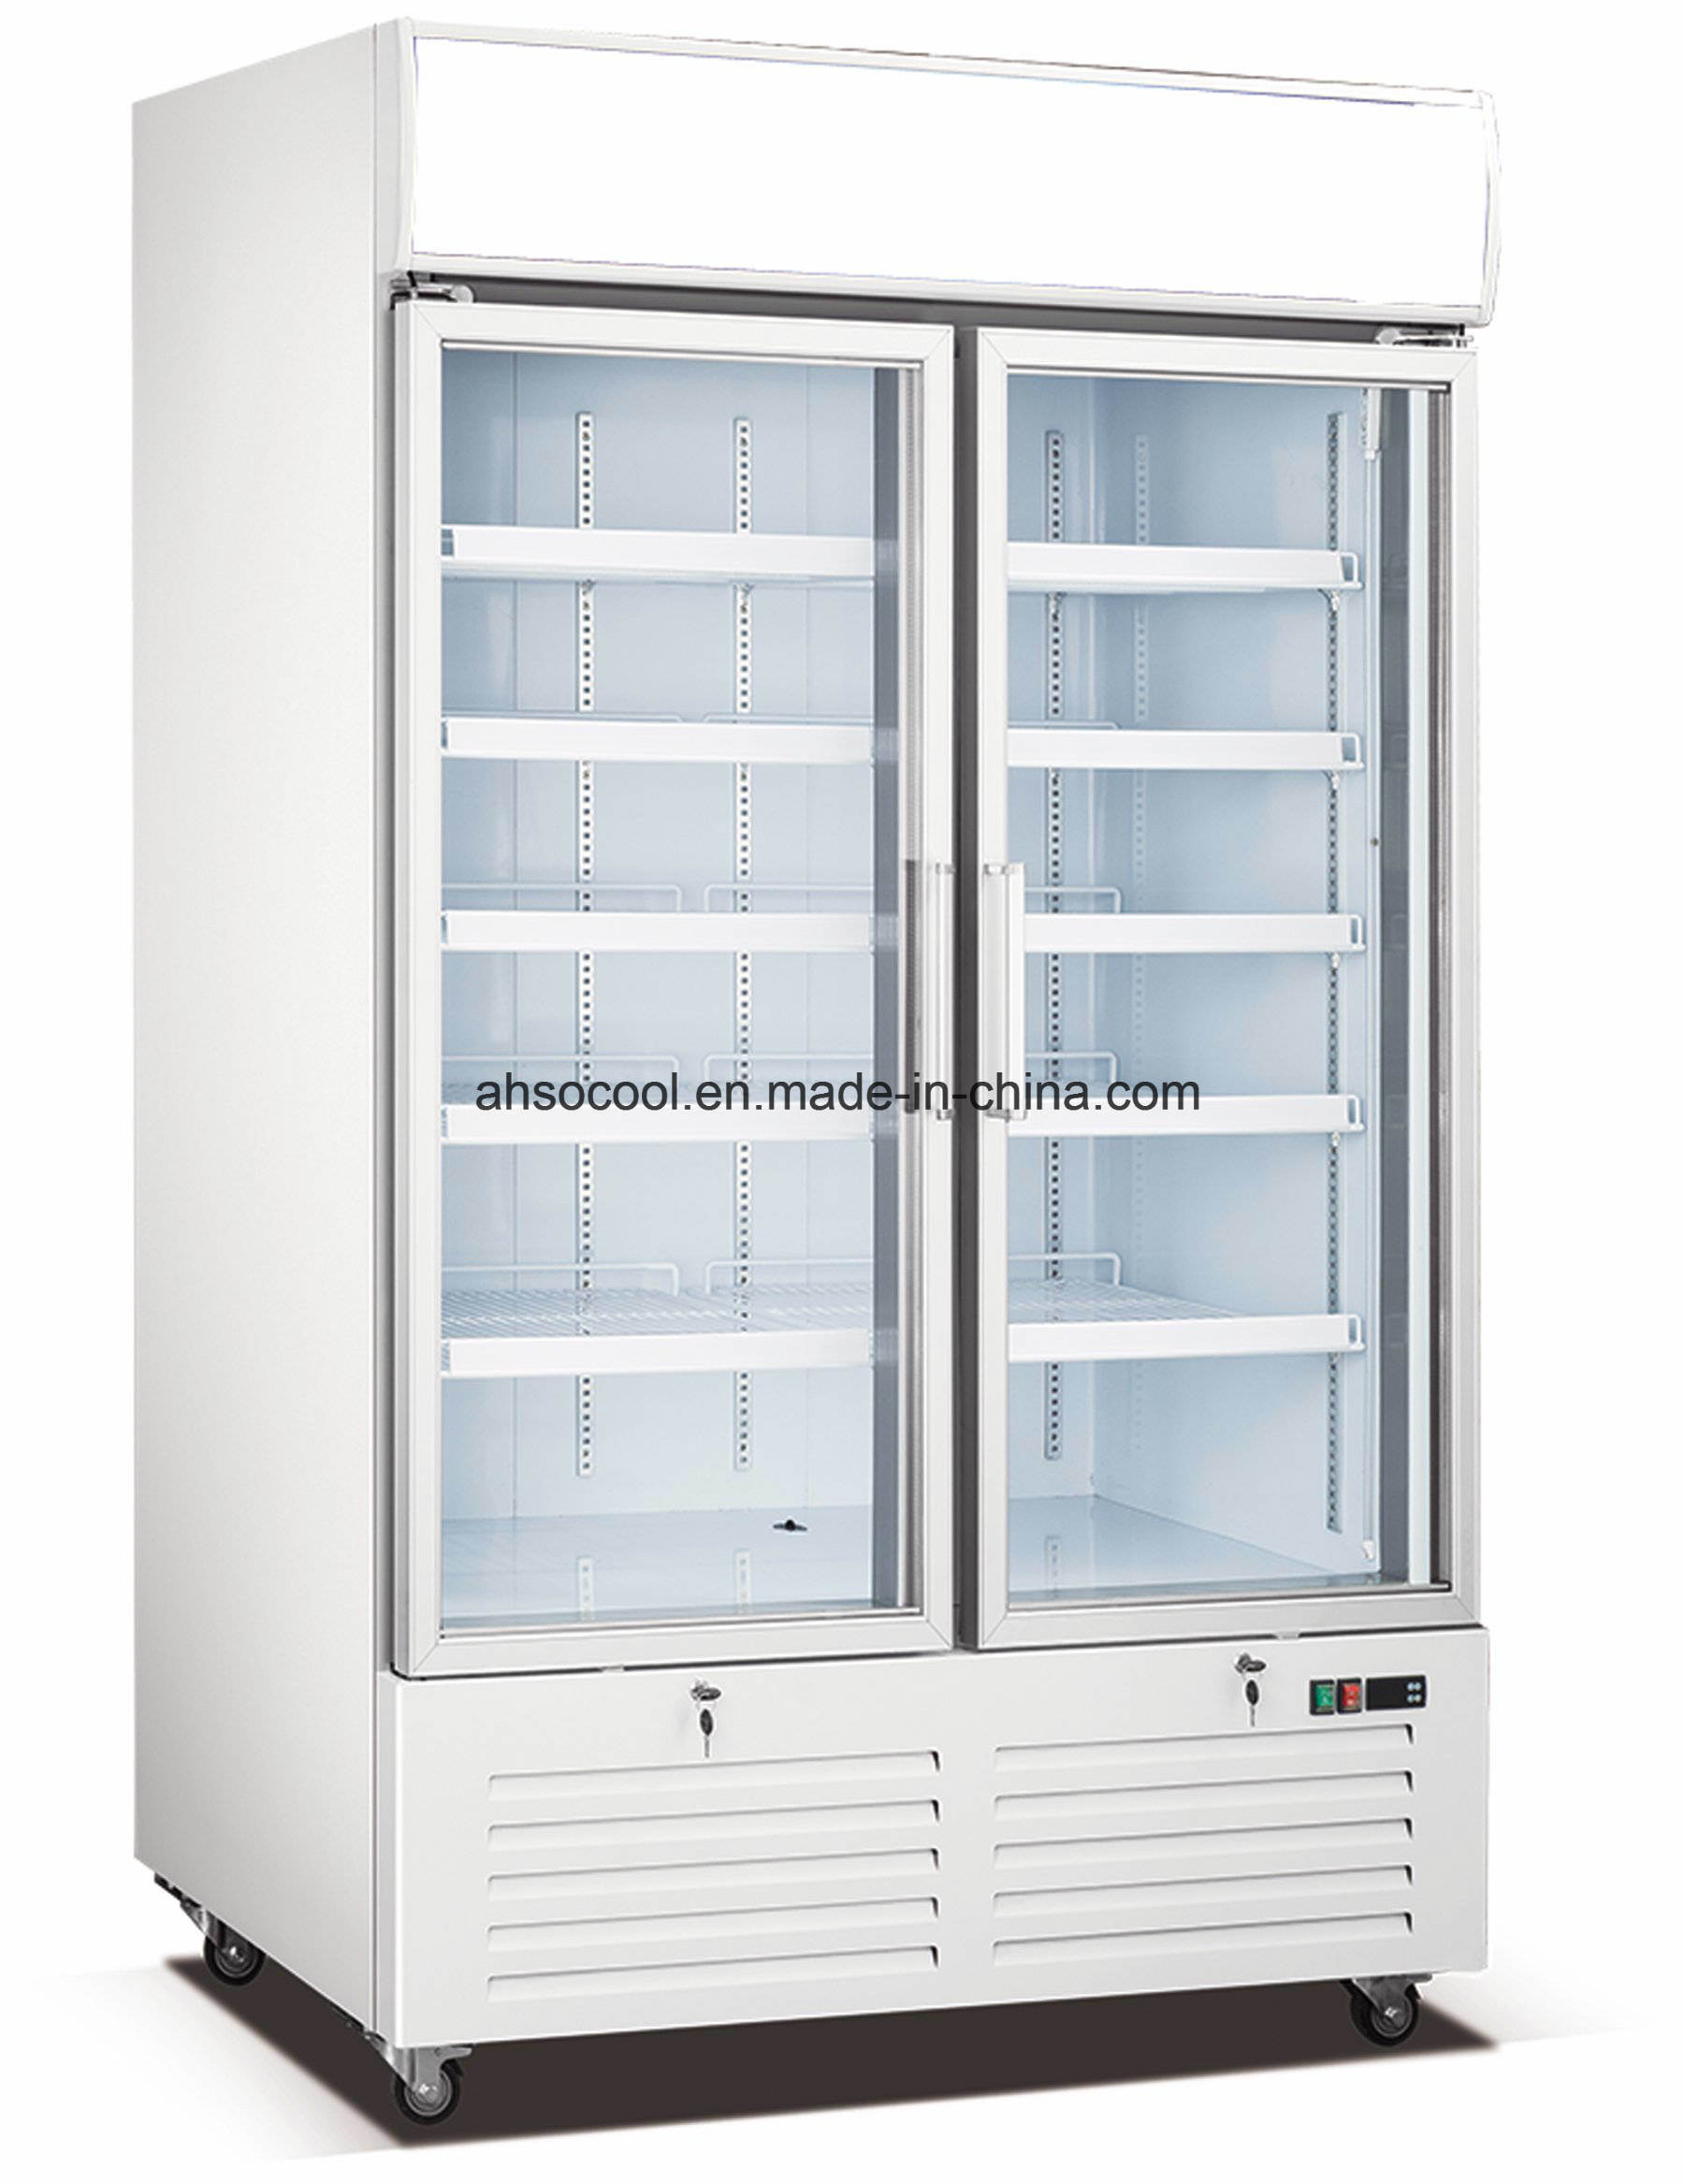 China Double Glass Door Freezer For Commercial Use  China